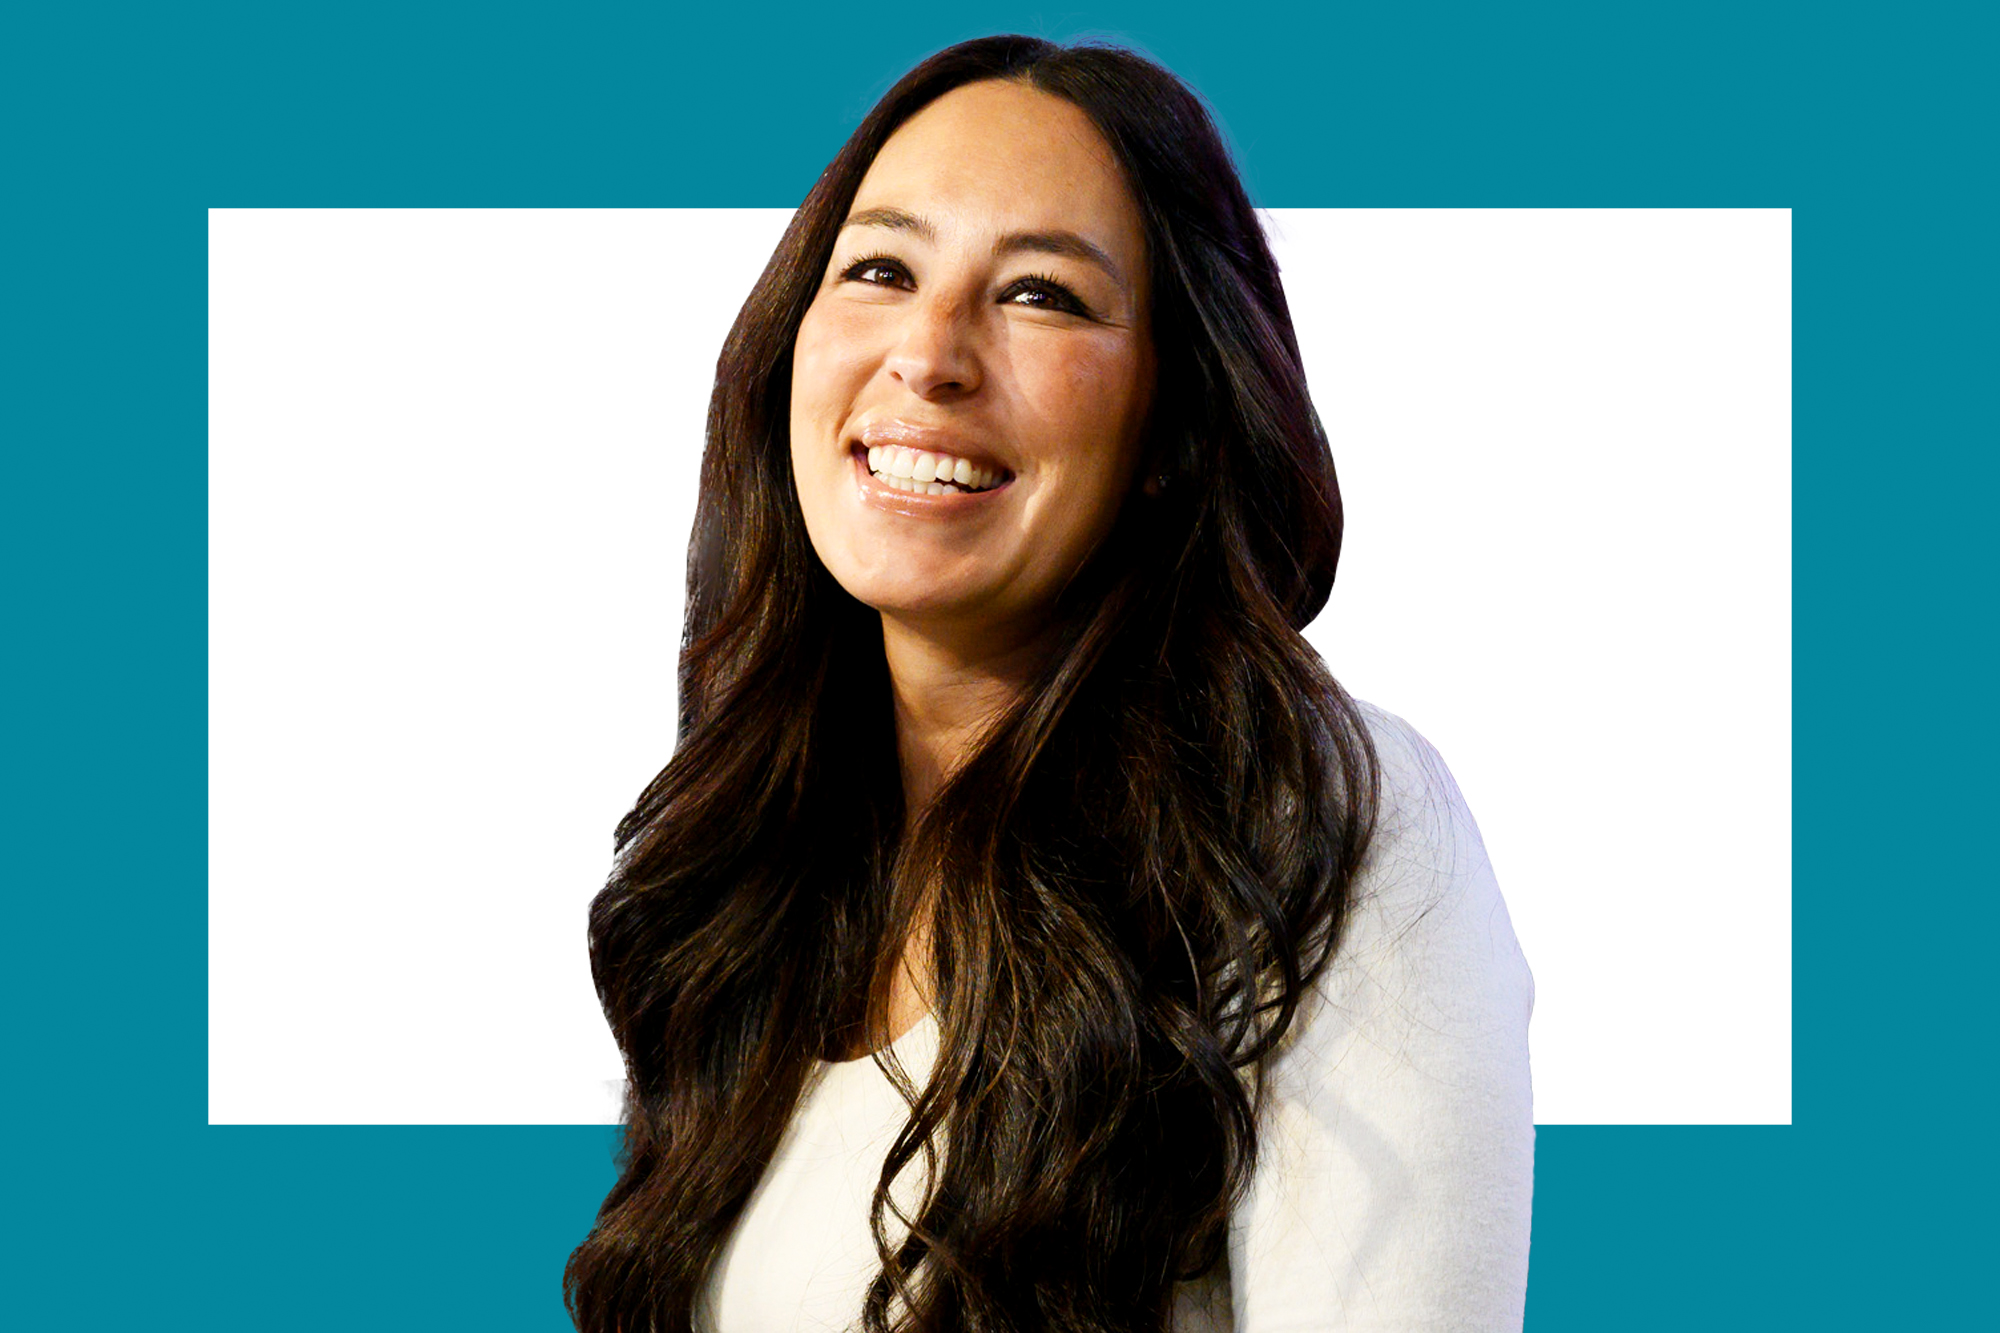 A portrait of Joanna Gaines on a designed background